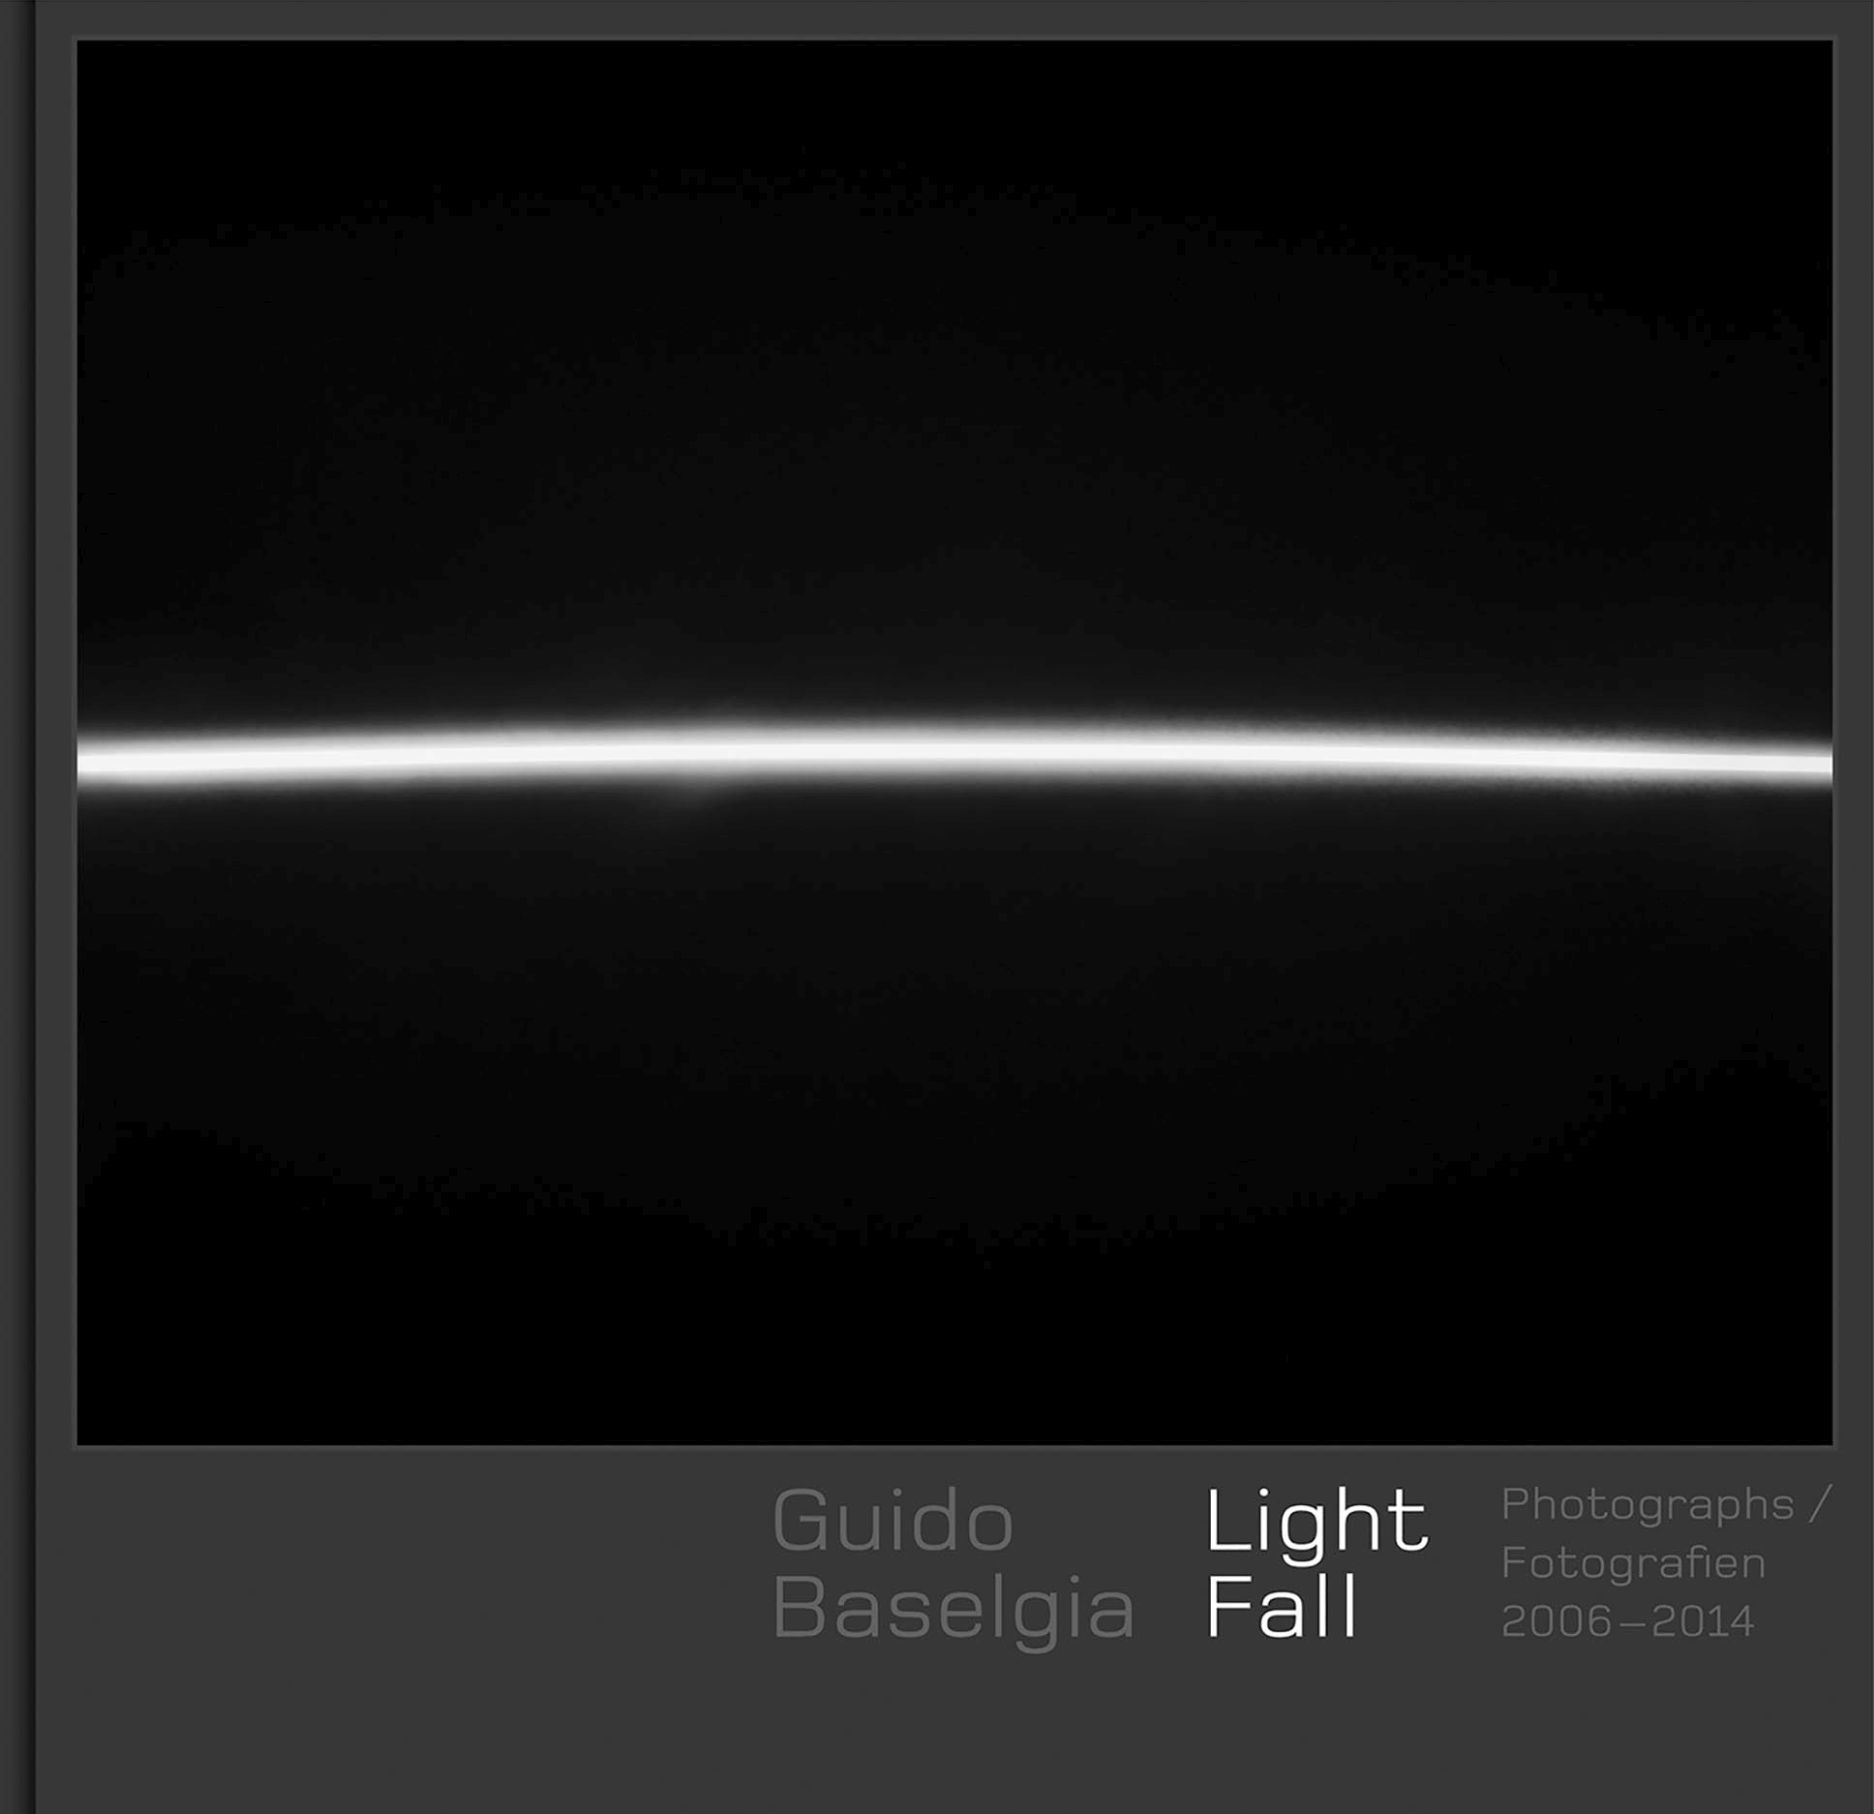 Guido Baselgia - Light Fall